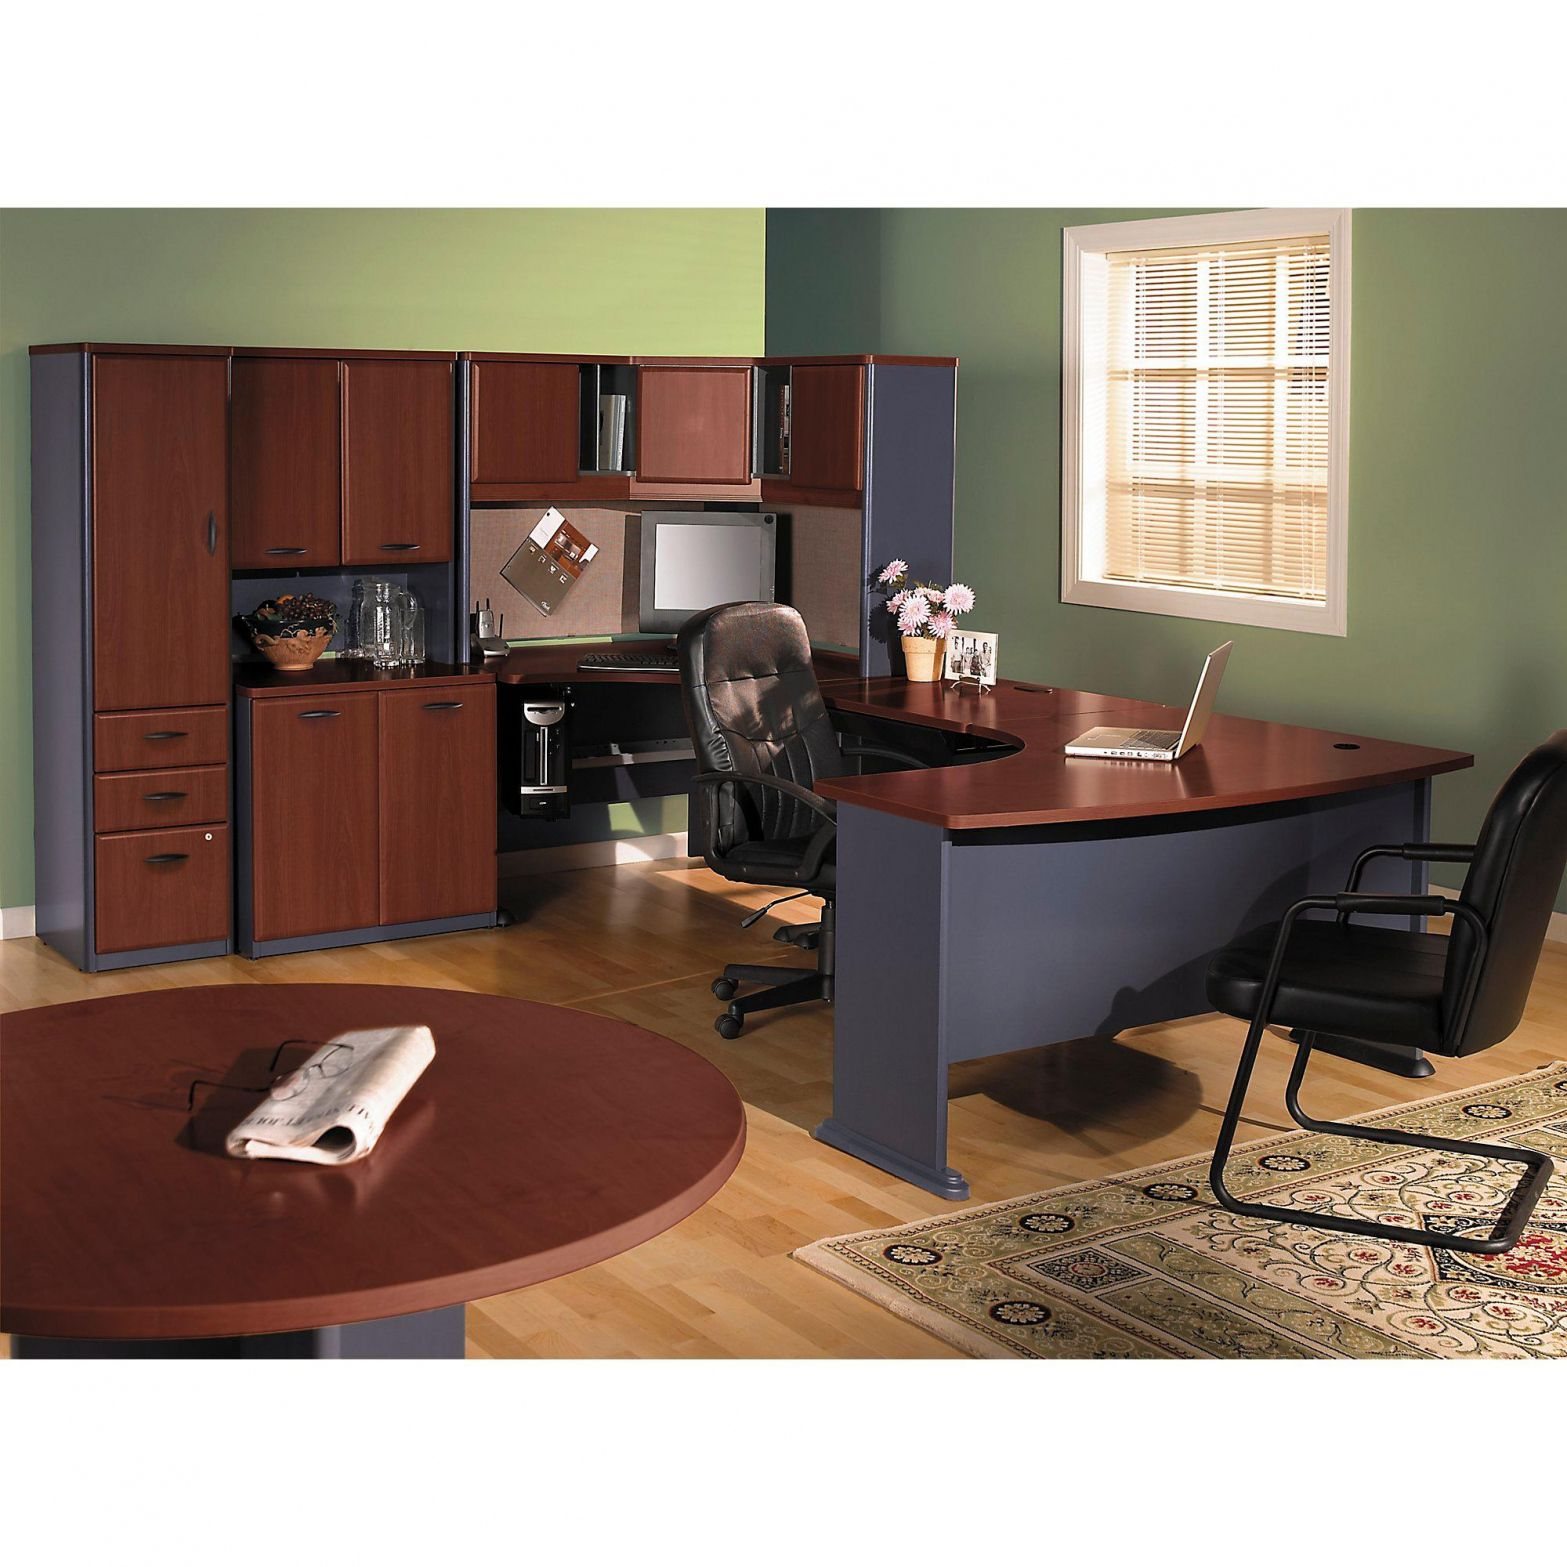 55 Small Round Office Meeting Table Real Wood Home Furniture Check More At